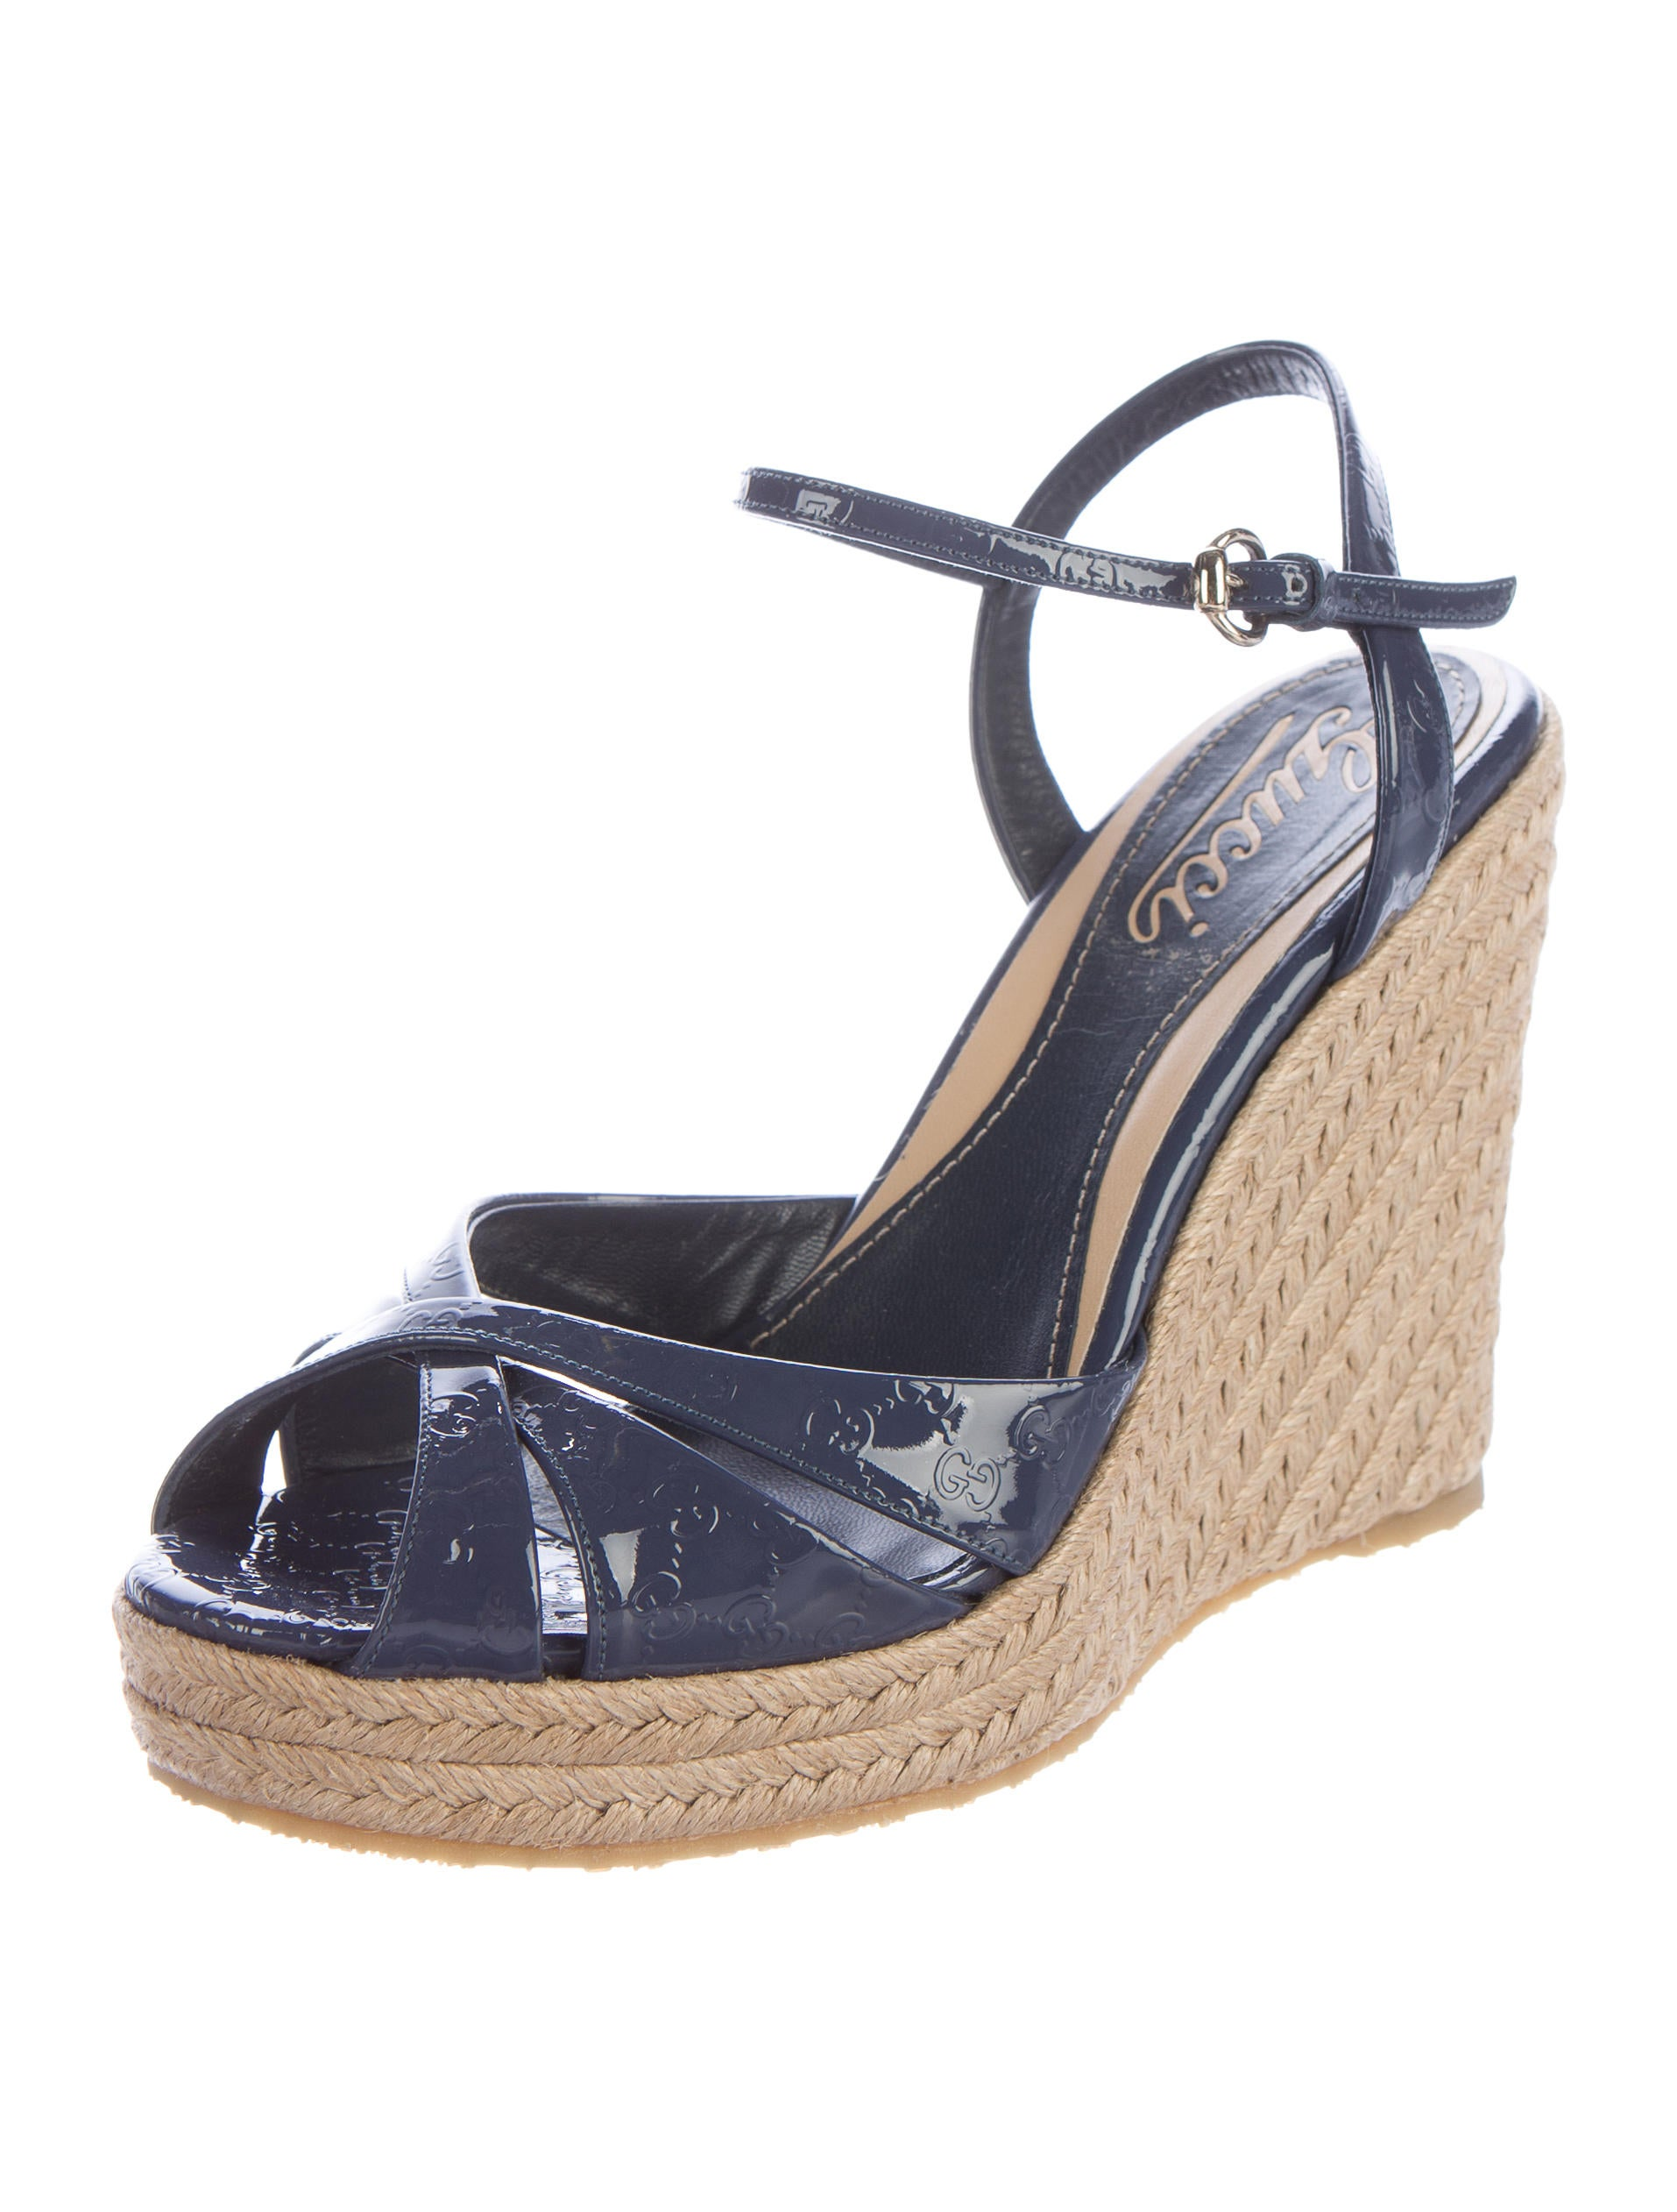 gucci microguccissima espadrille wedges shoes